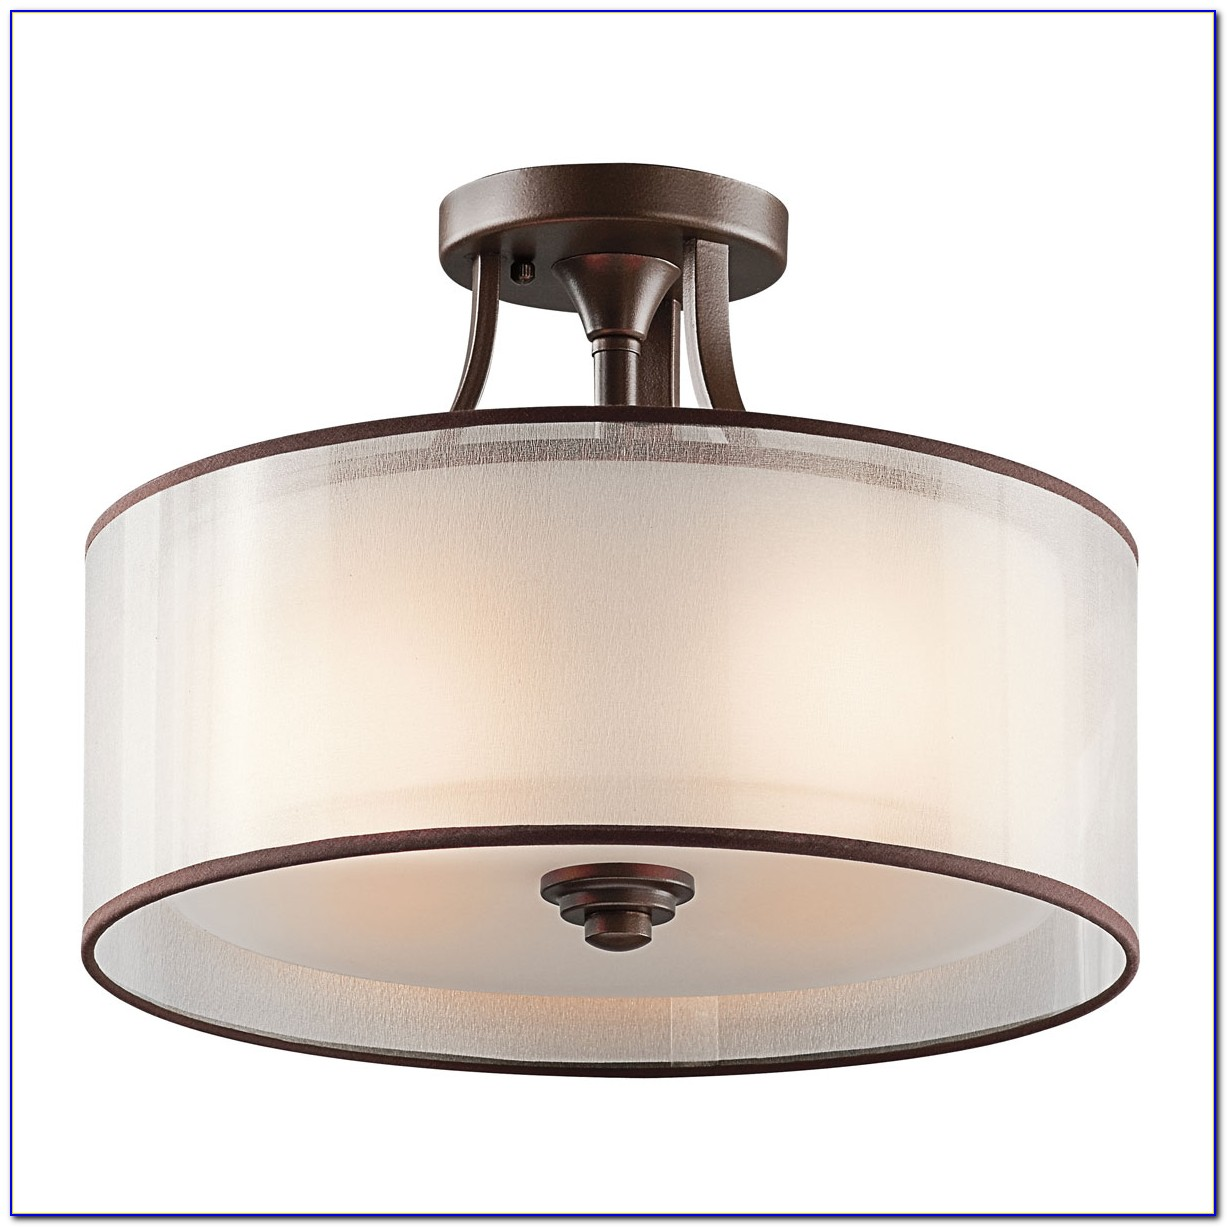 Modern Semi Flush Mount Ceiling Light Fixtures